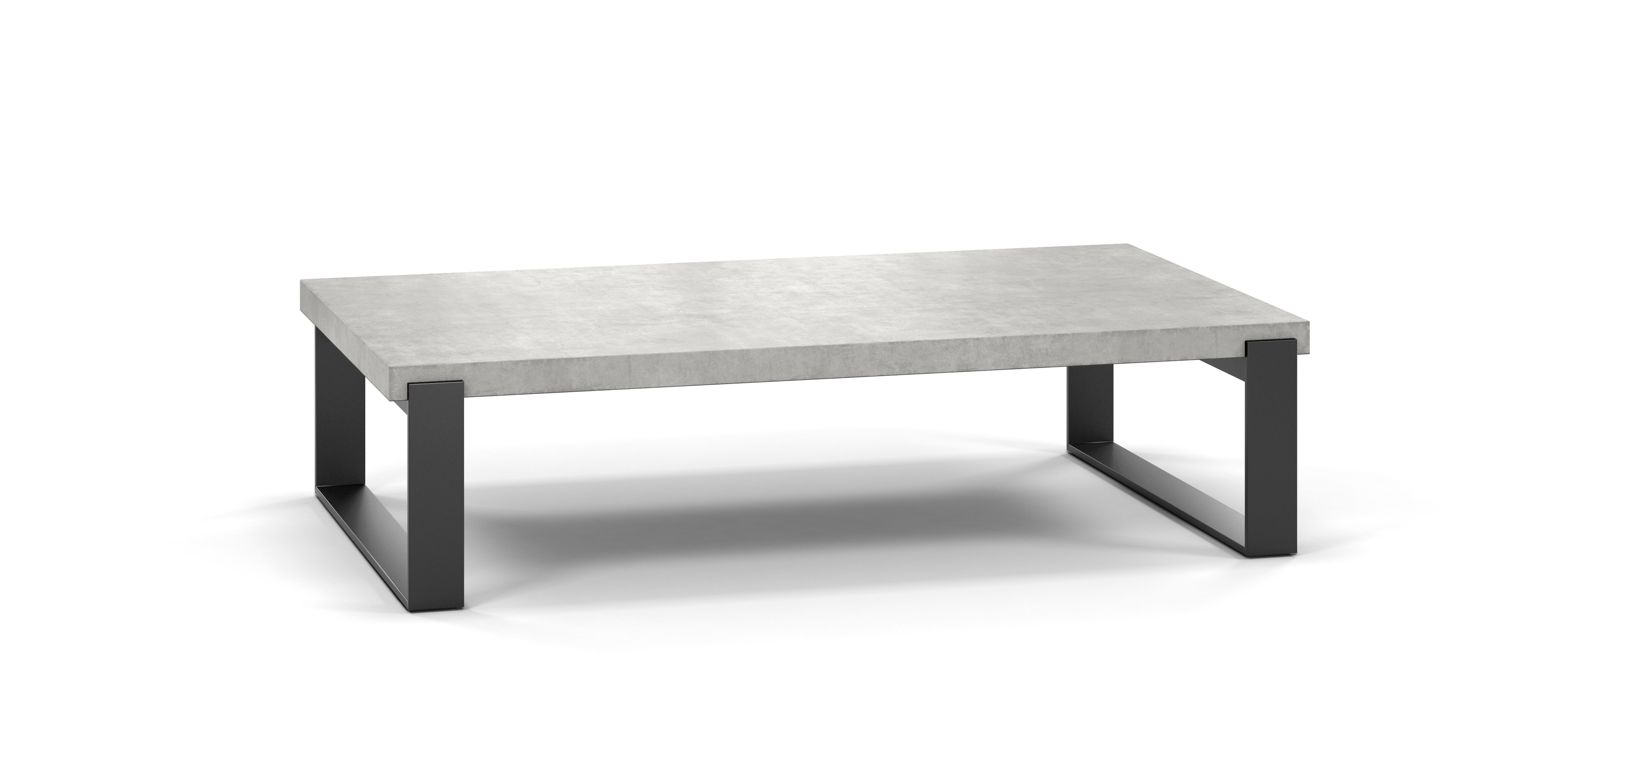 Optimum b ton cocktail table roche bobois - Table roche et bobois ...